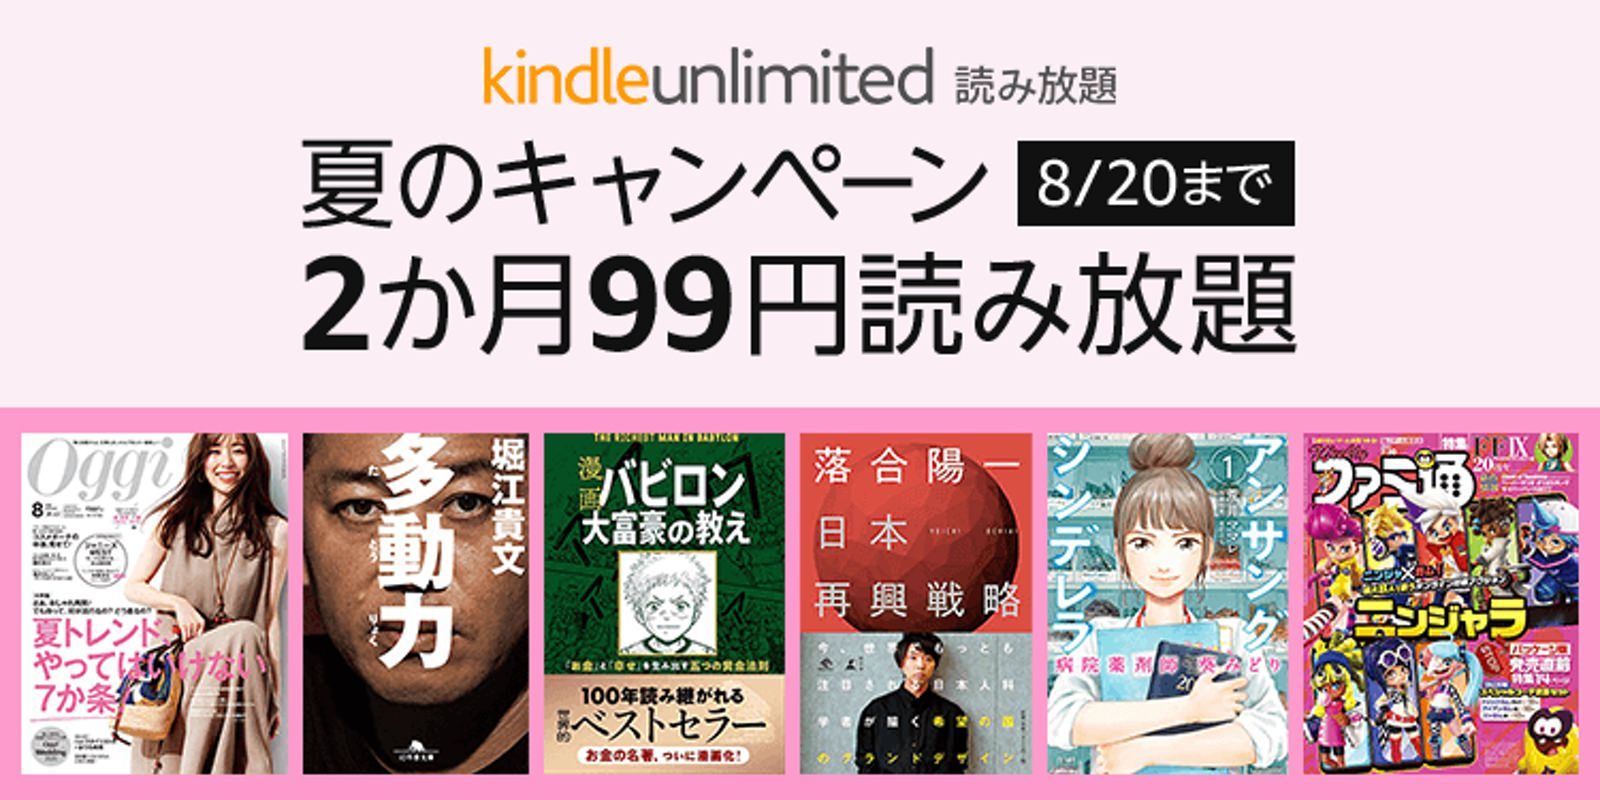 Kindle Store 2month unlimited sale